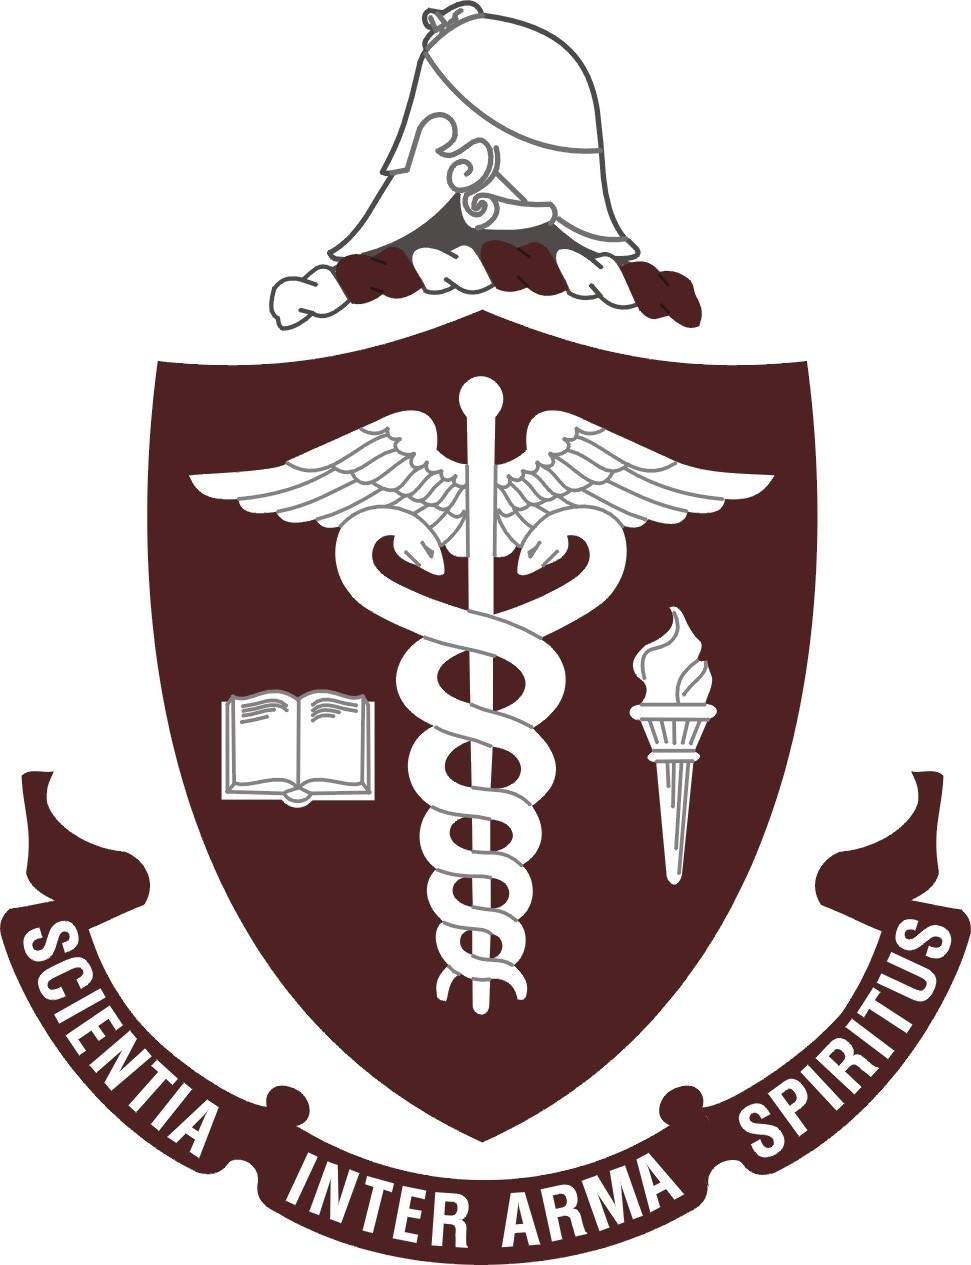 Nursing Coat of Arms: Cultural Competence, Communication, Empathy, Teamwork, and Pride